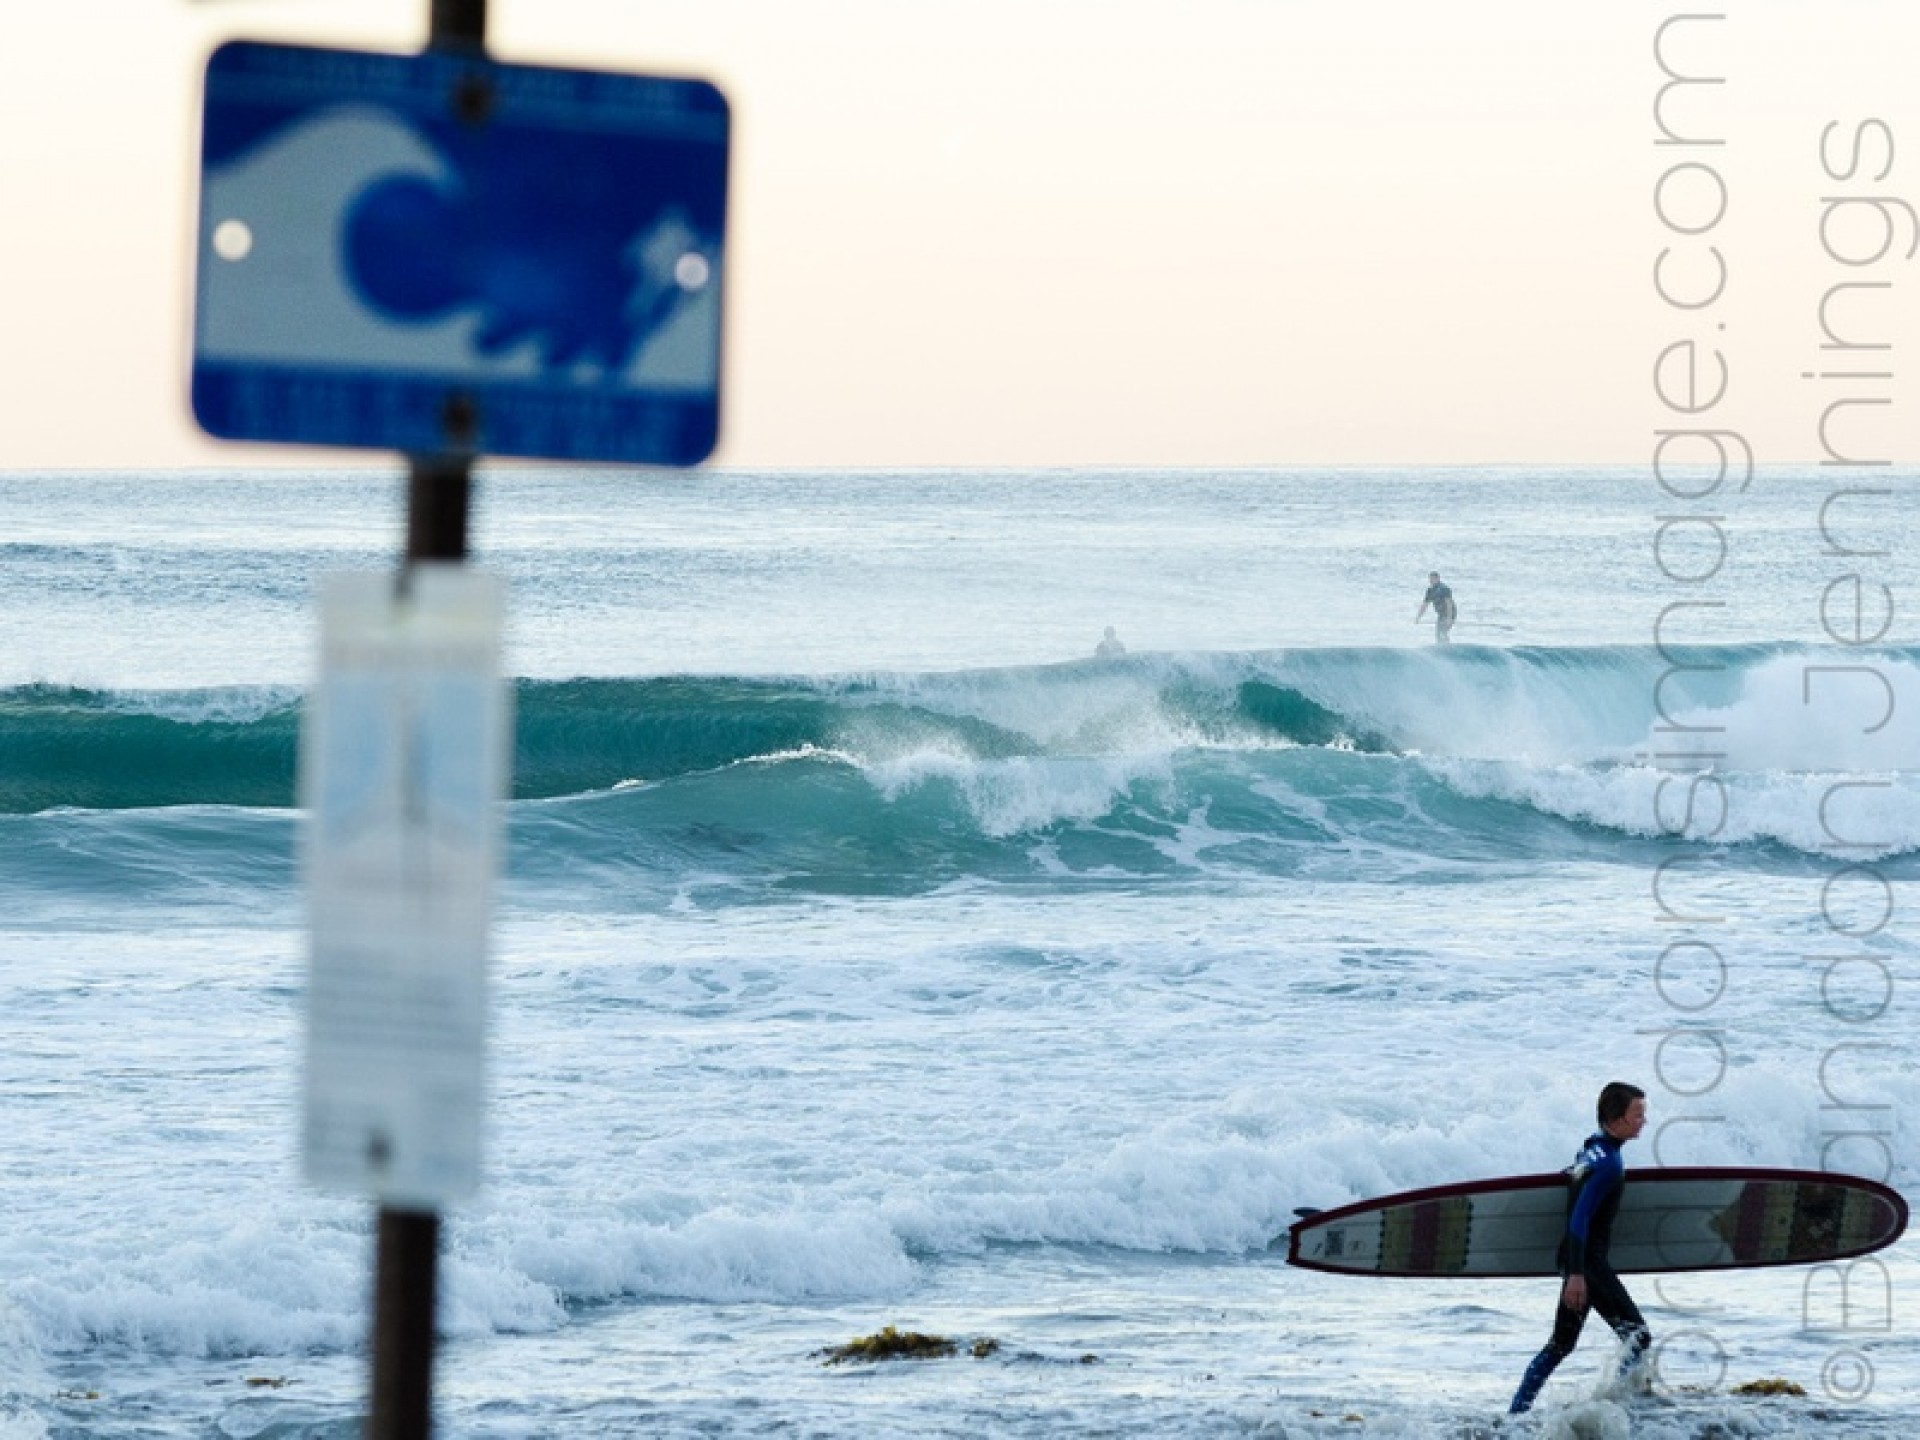 Brandon Jennings's photo of Salt Creek